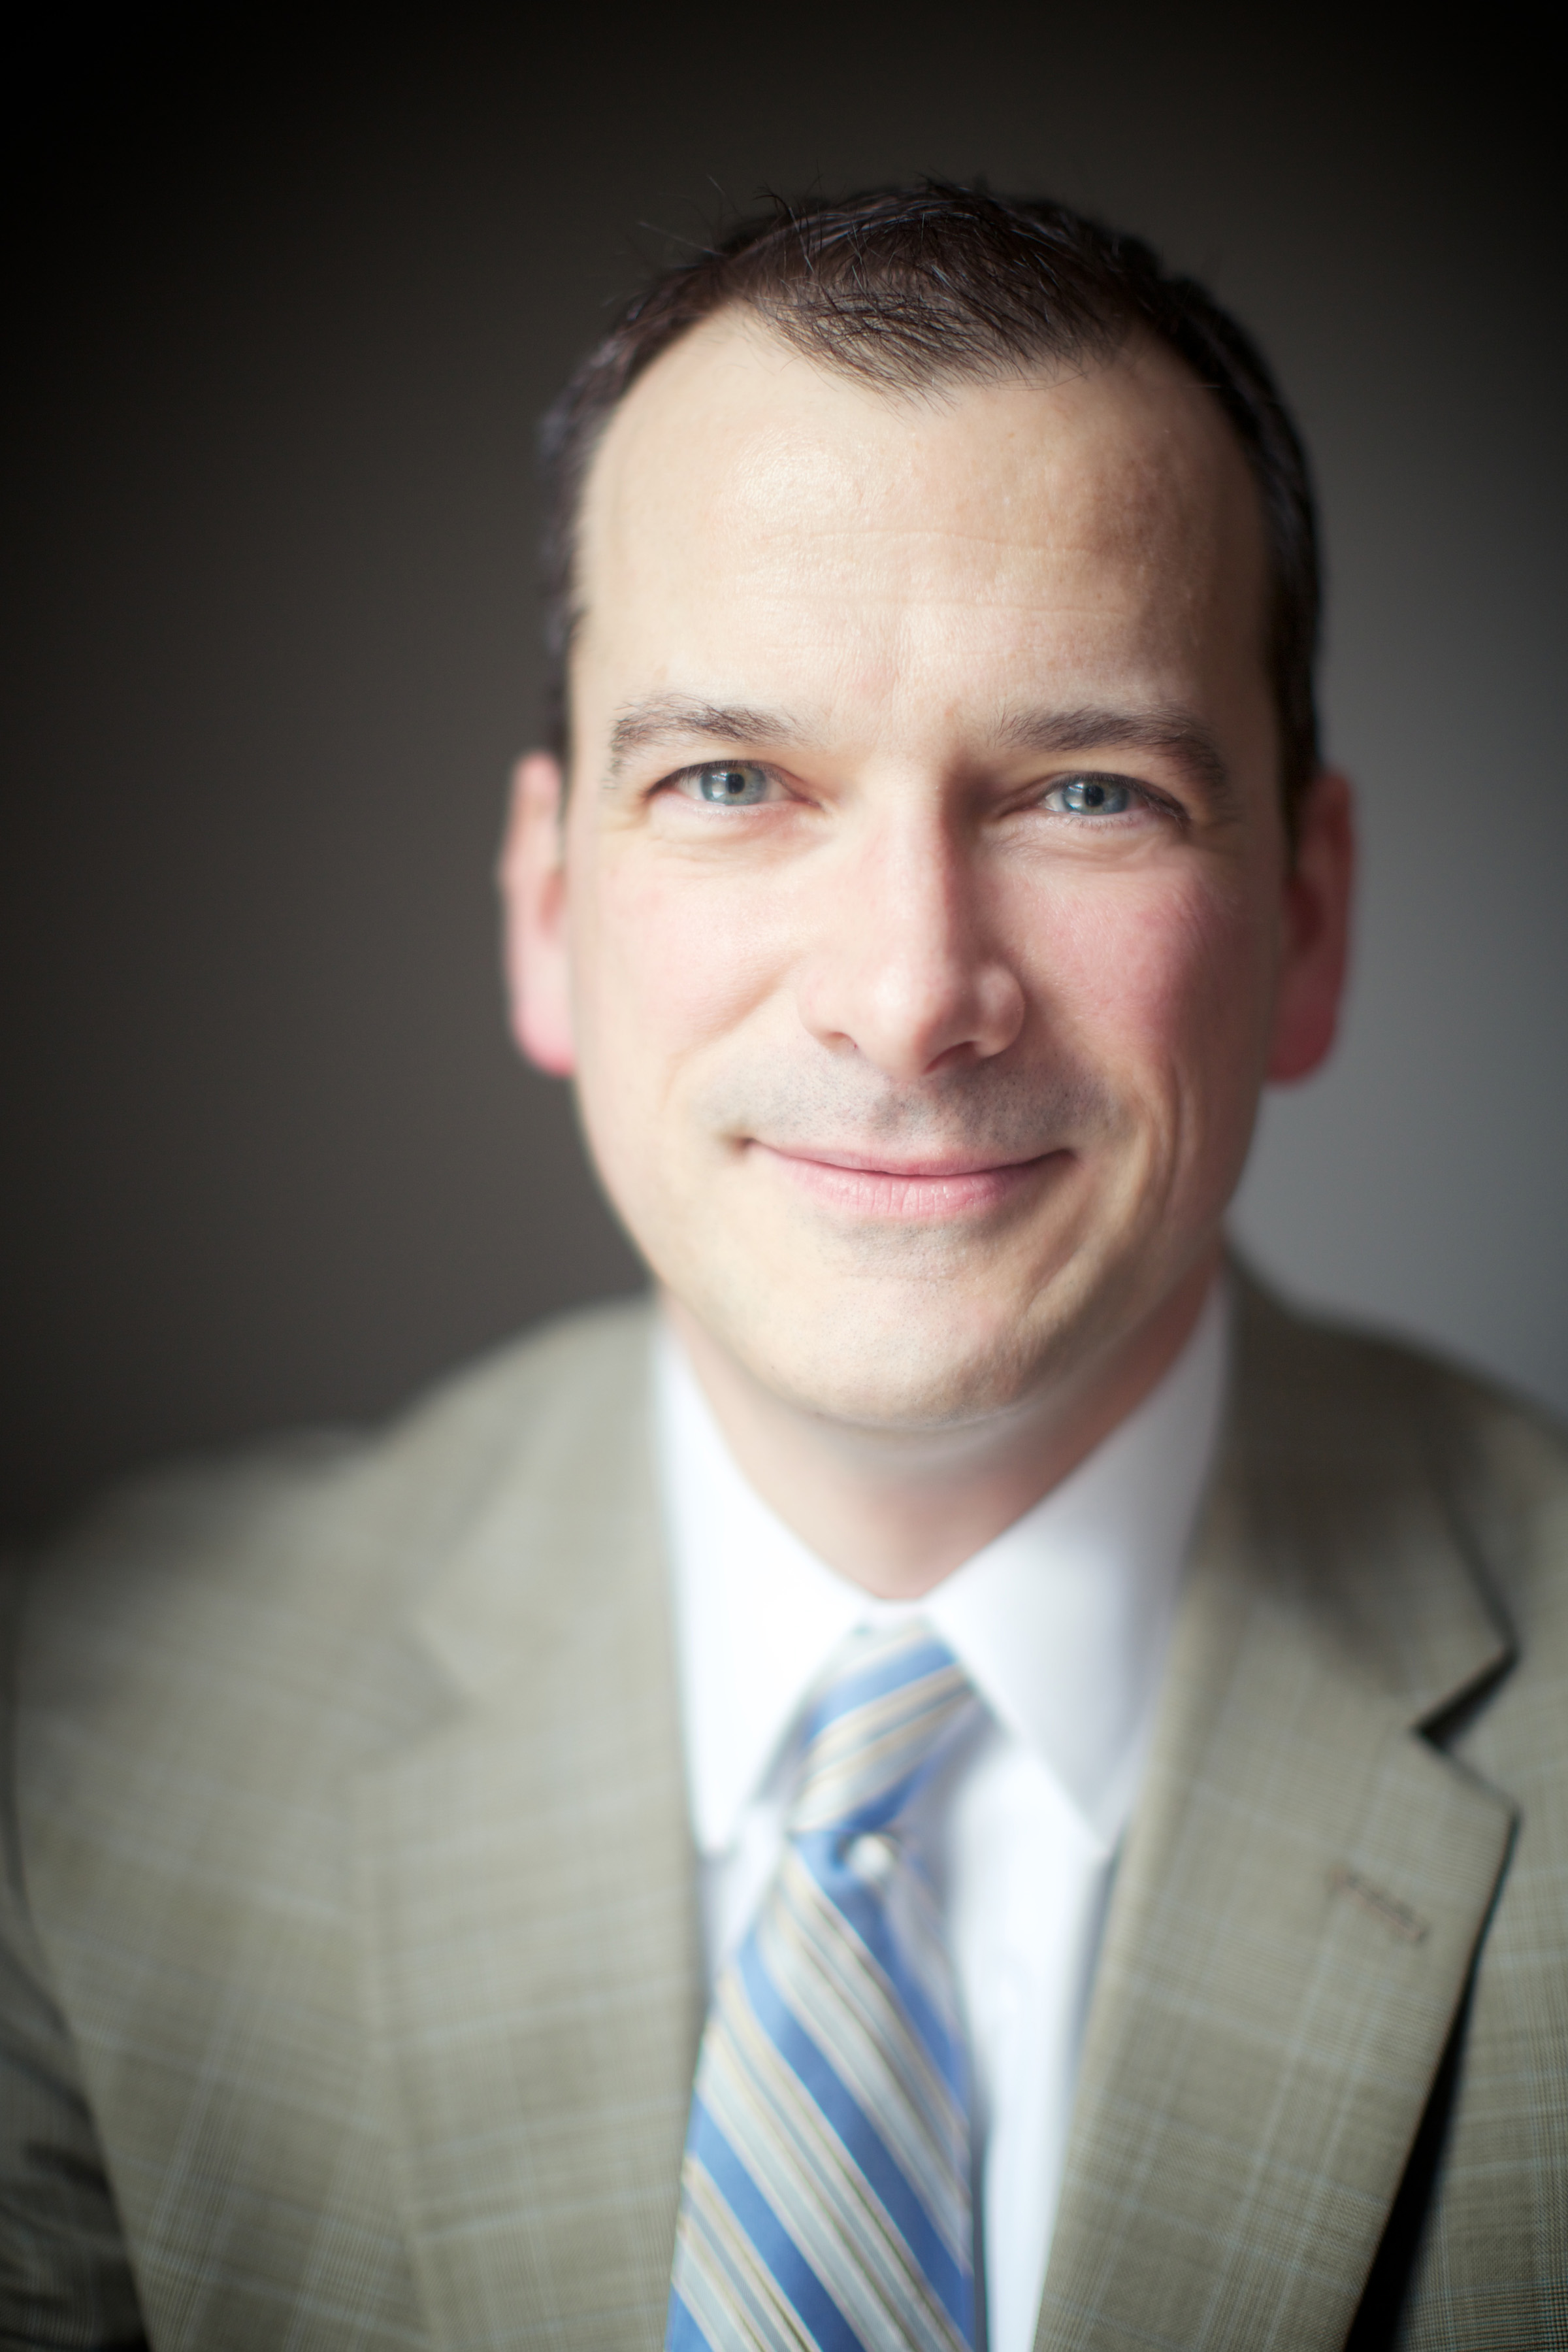 Paul thallner, Partner, Great place to work